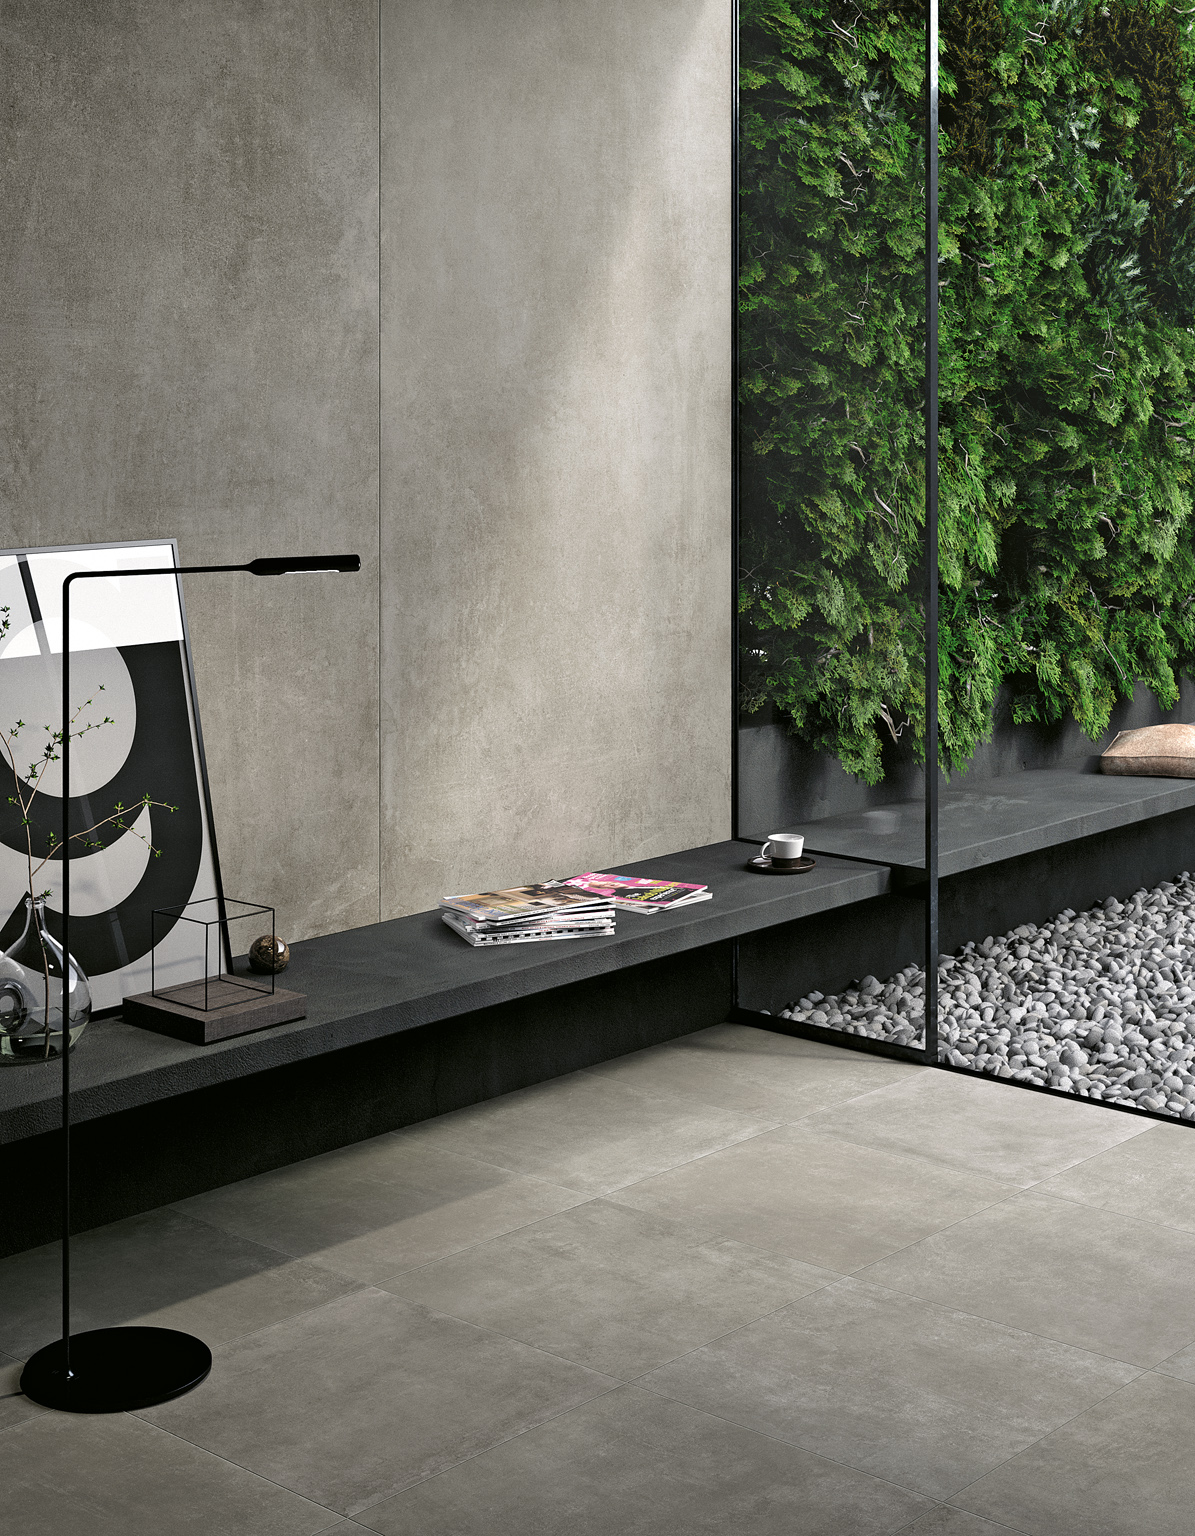 porcelain tile images: Edge range high quality photo